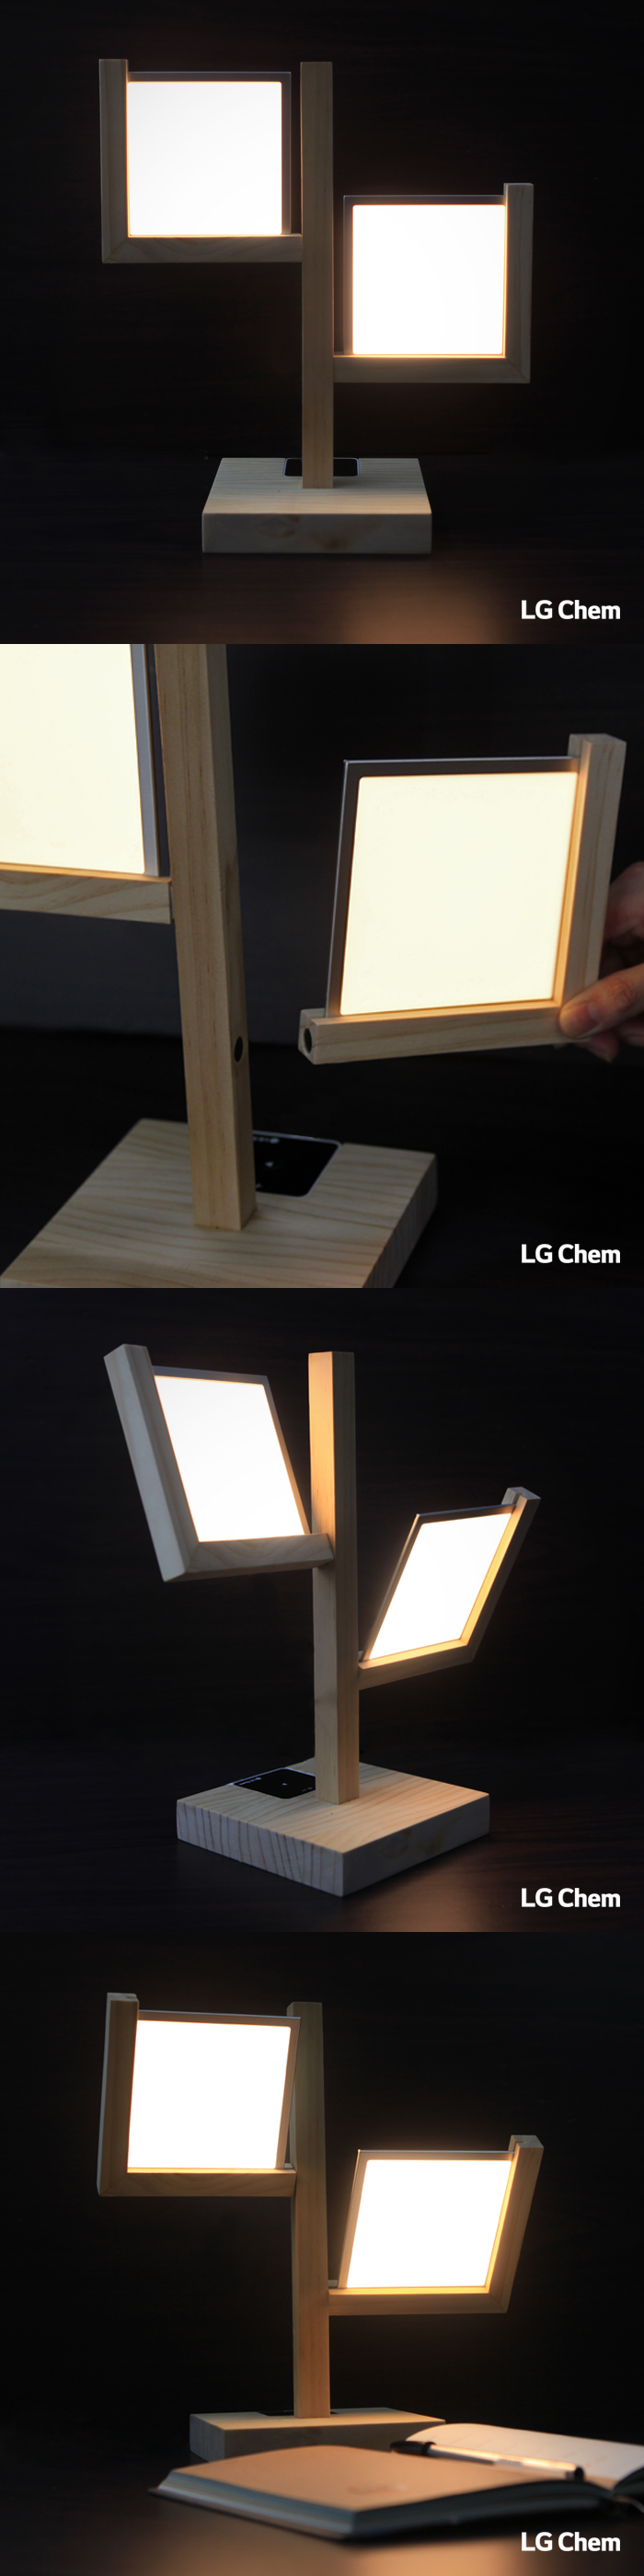 pin by md gkenergies on led ideas pinterest lighting table lamp rh pinterest com